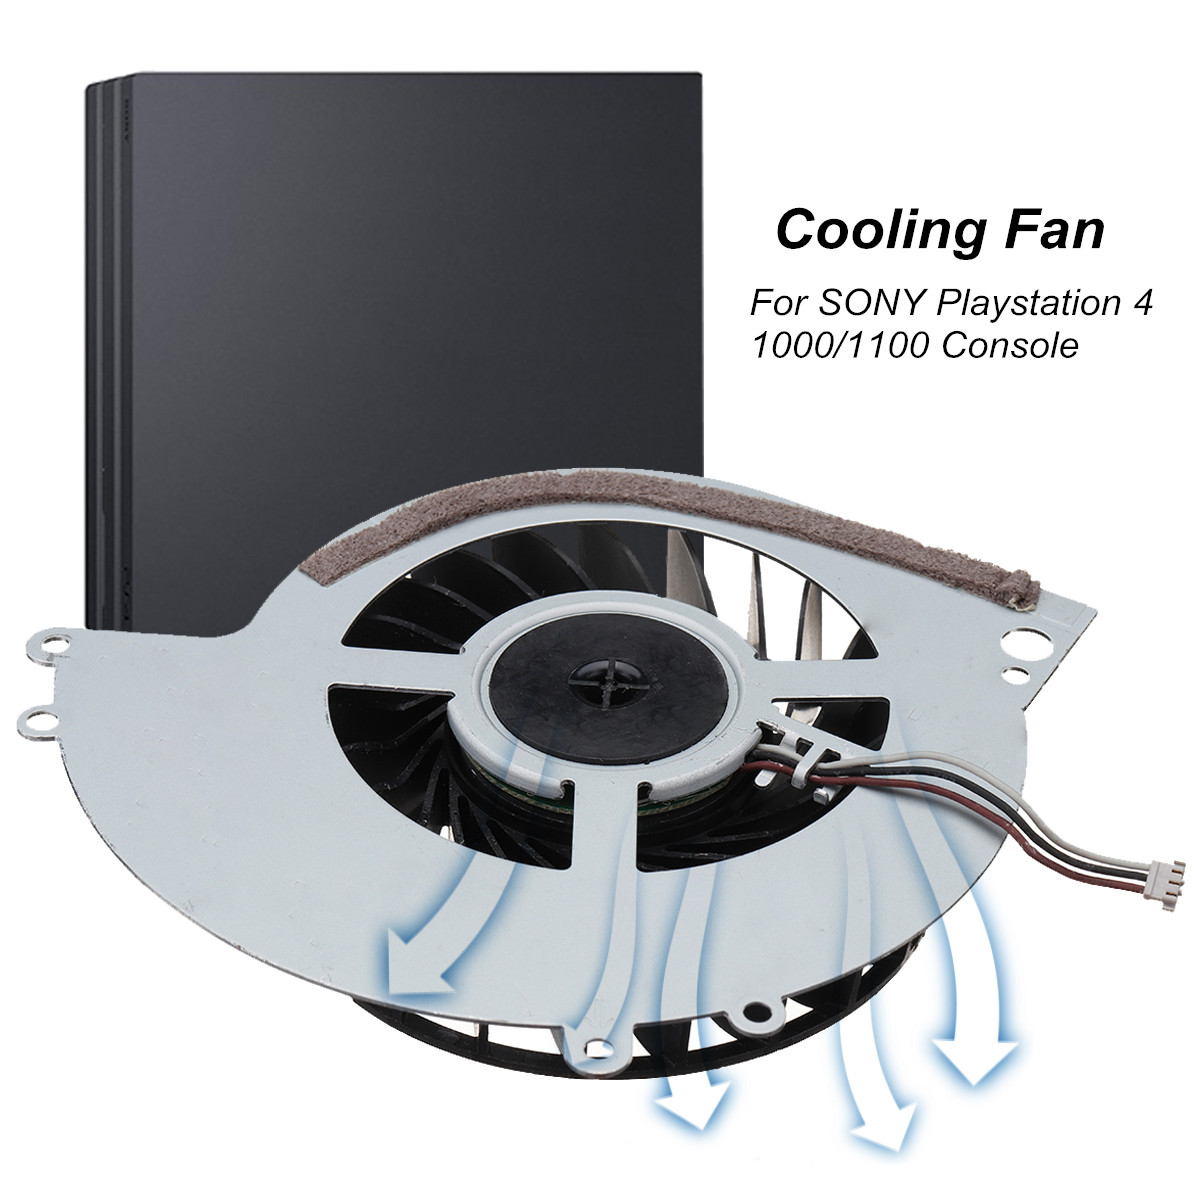 Computer Internal Cooling Fan 3 Pin Connecter For SONY for Playstation 4 ( PS4 ) 1000/1100 Model Lighter CPU Cooler Fans image